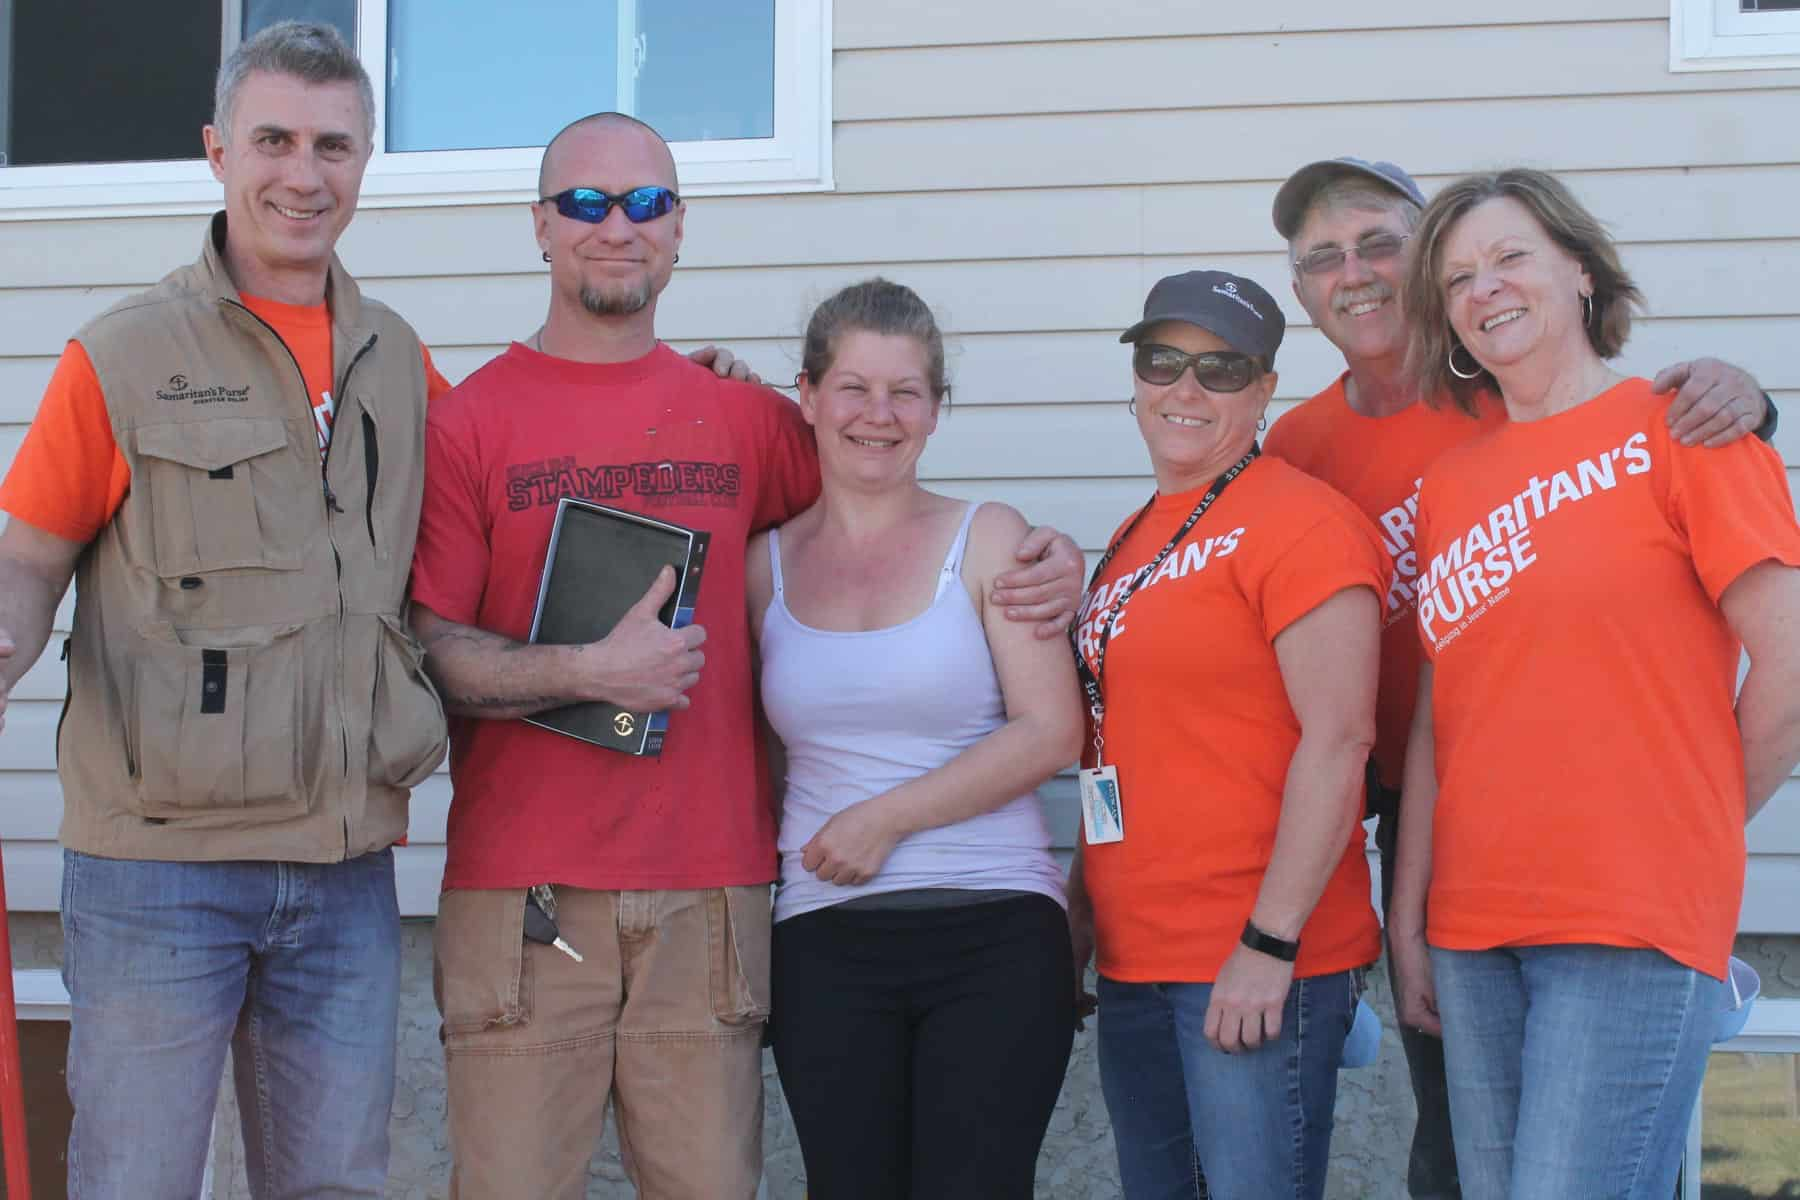 Samaritan's Purse volunteers presented Jen and Rob with a Bible they signed.